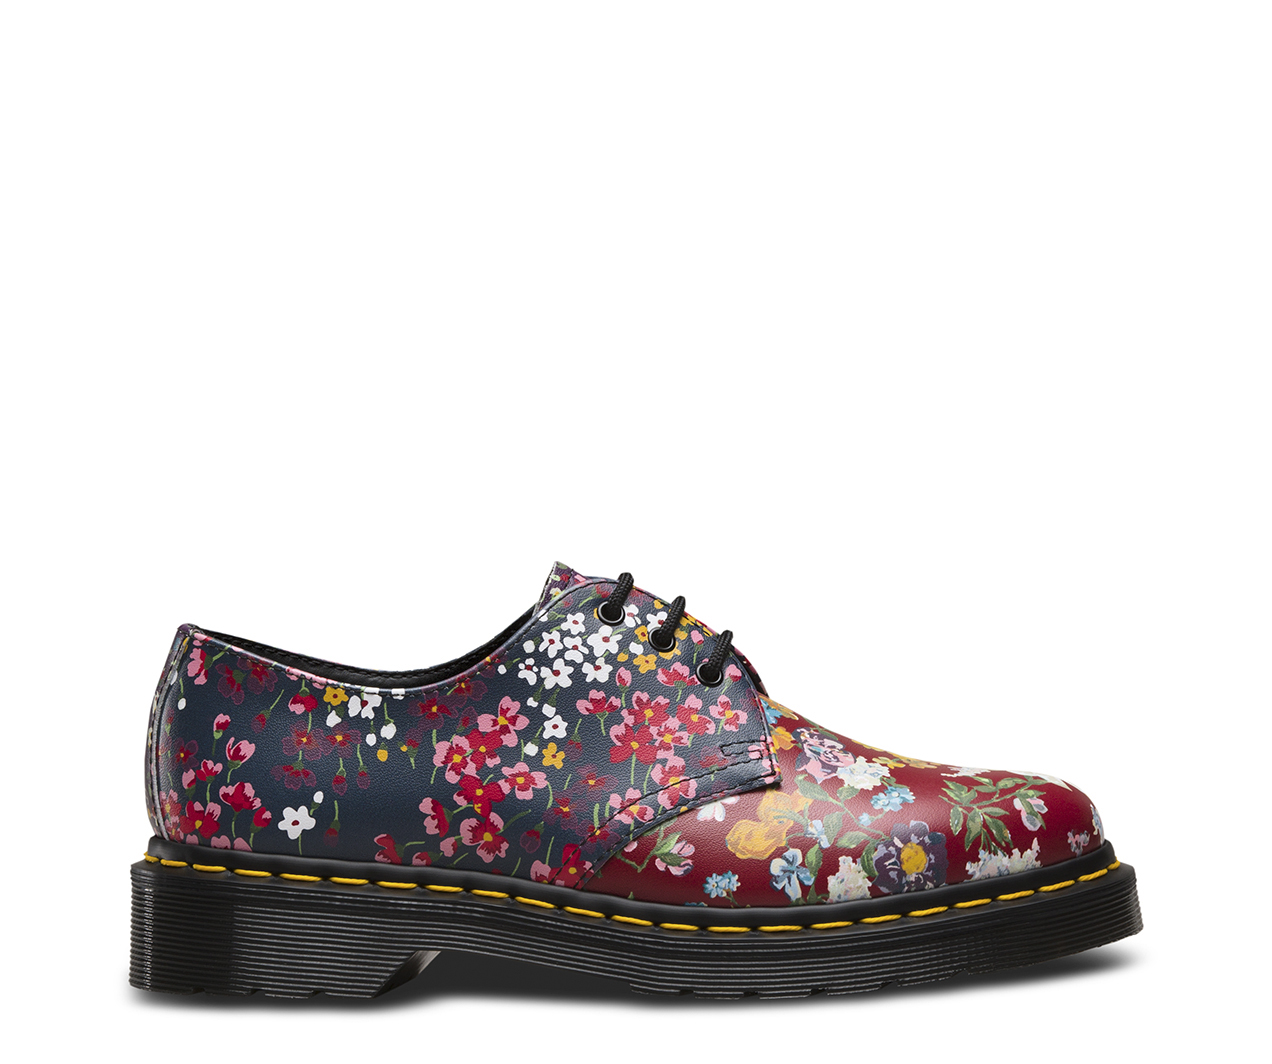 1461 floral clash women 39 s shoes official dr martens store uk. Black Bedroom Furniture Sets. Home Design Ideas